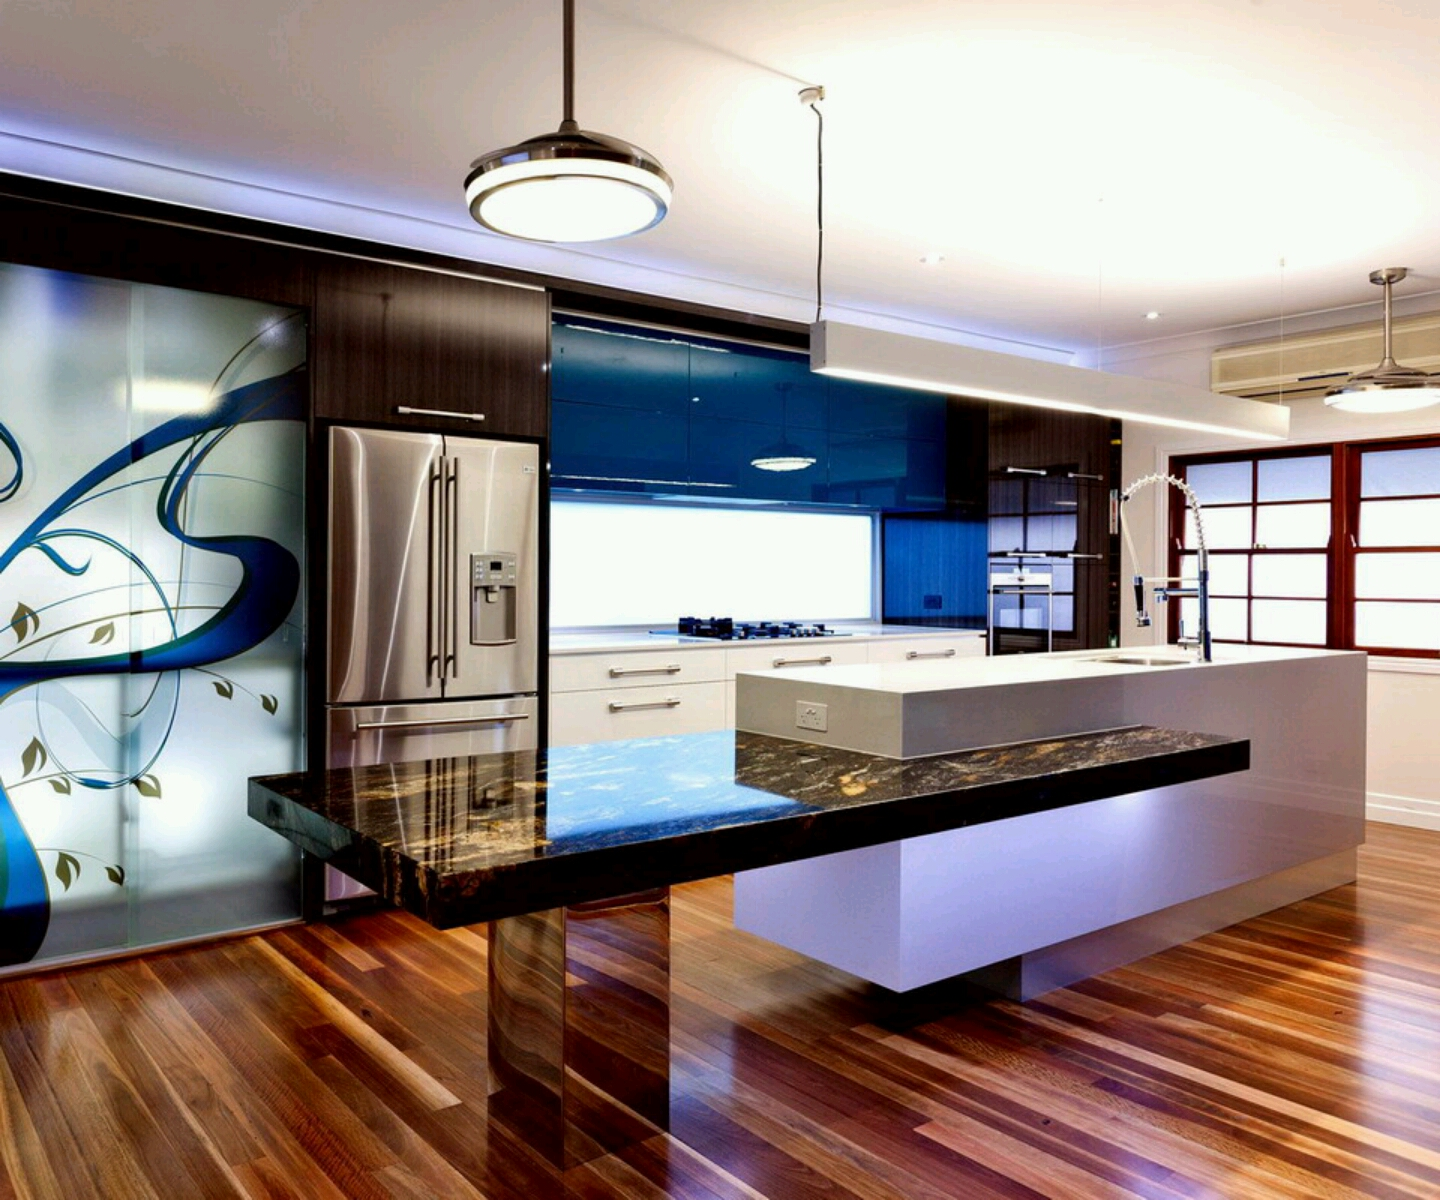 Modern kitchen designs 2013 interior decorating accessories House beautiful kitchen of the year 2013